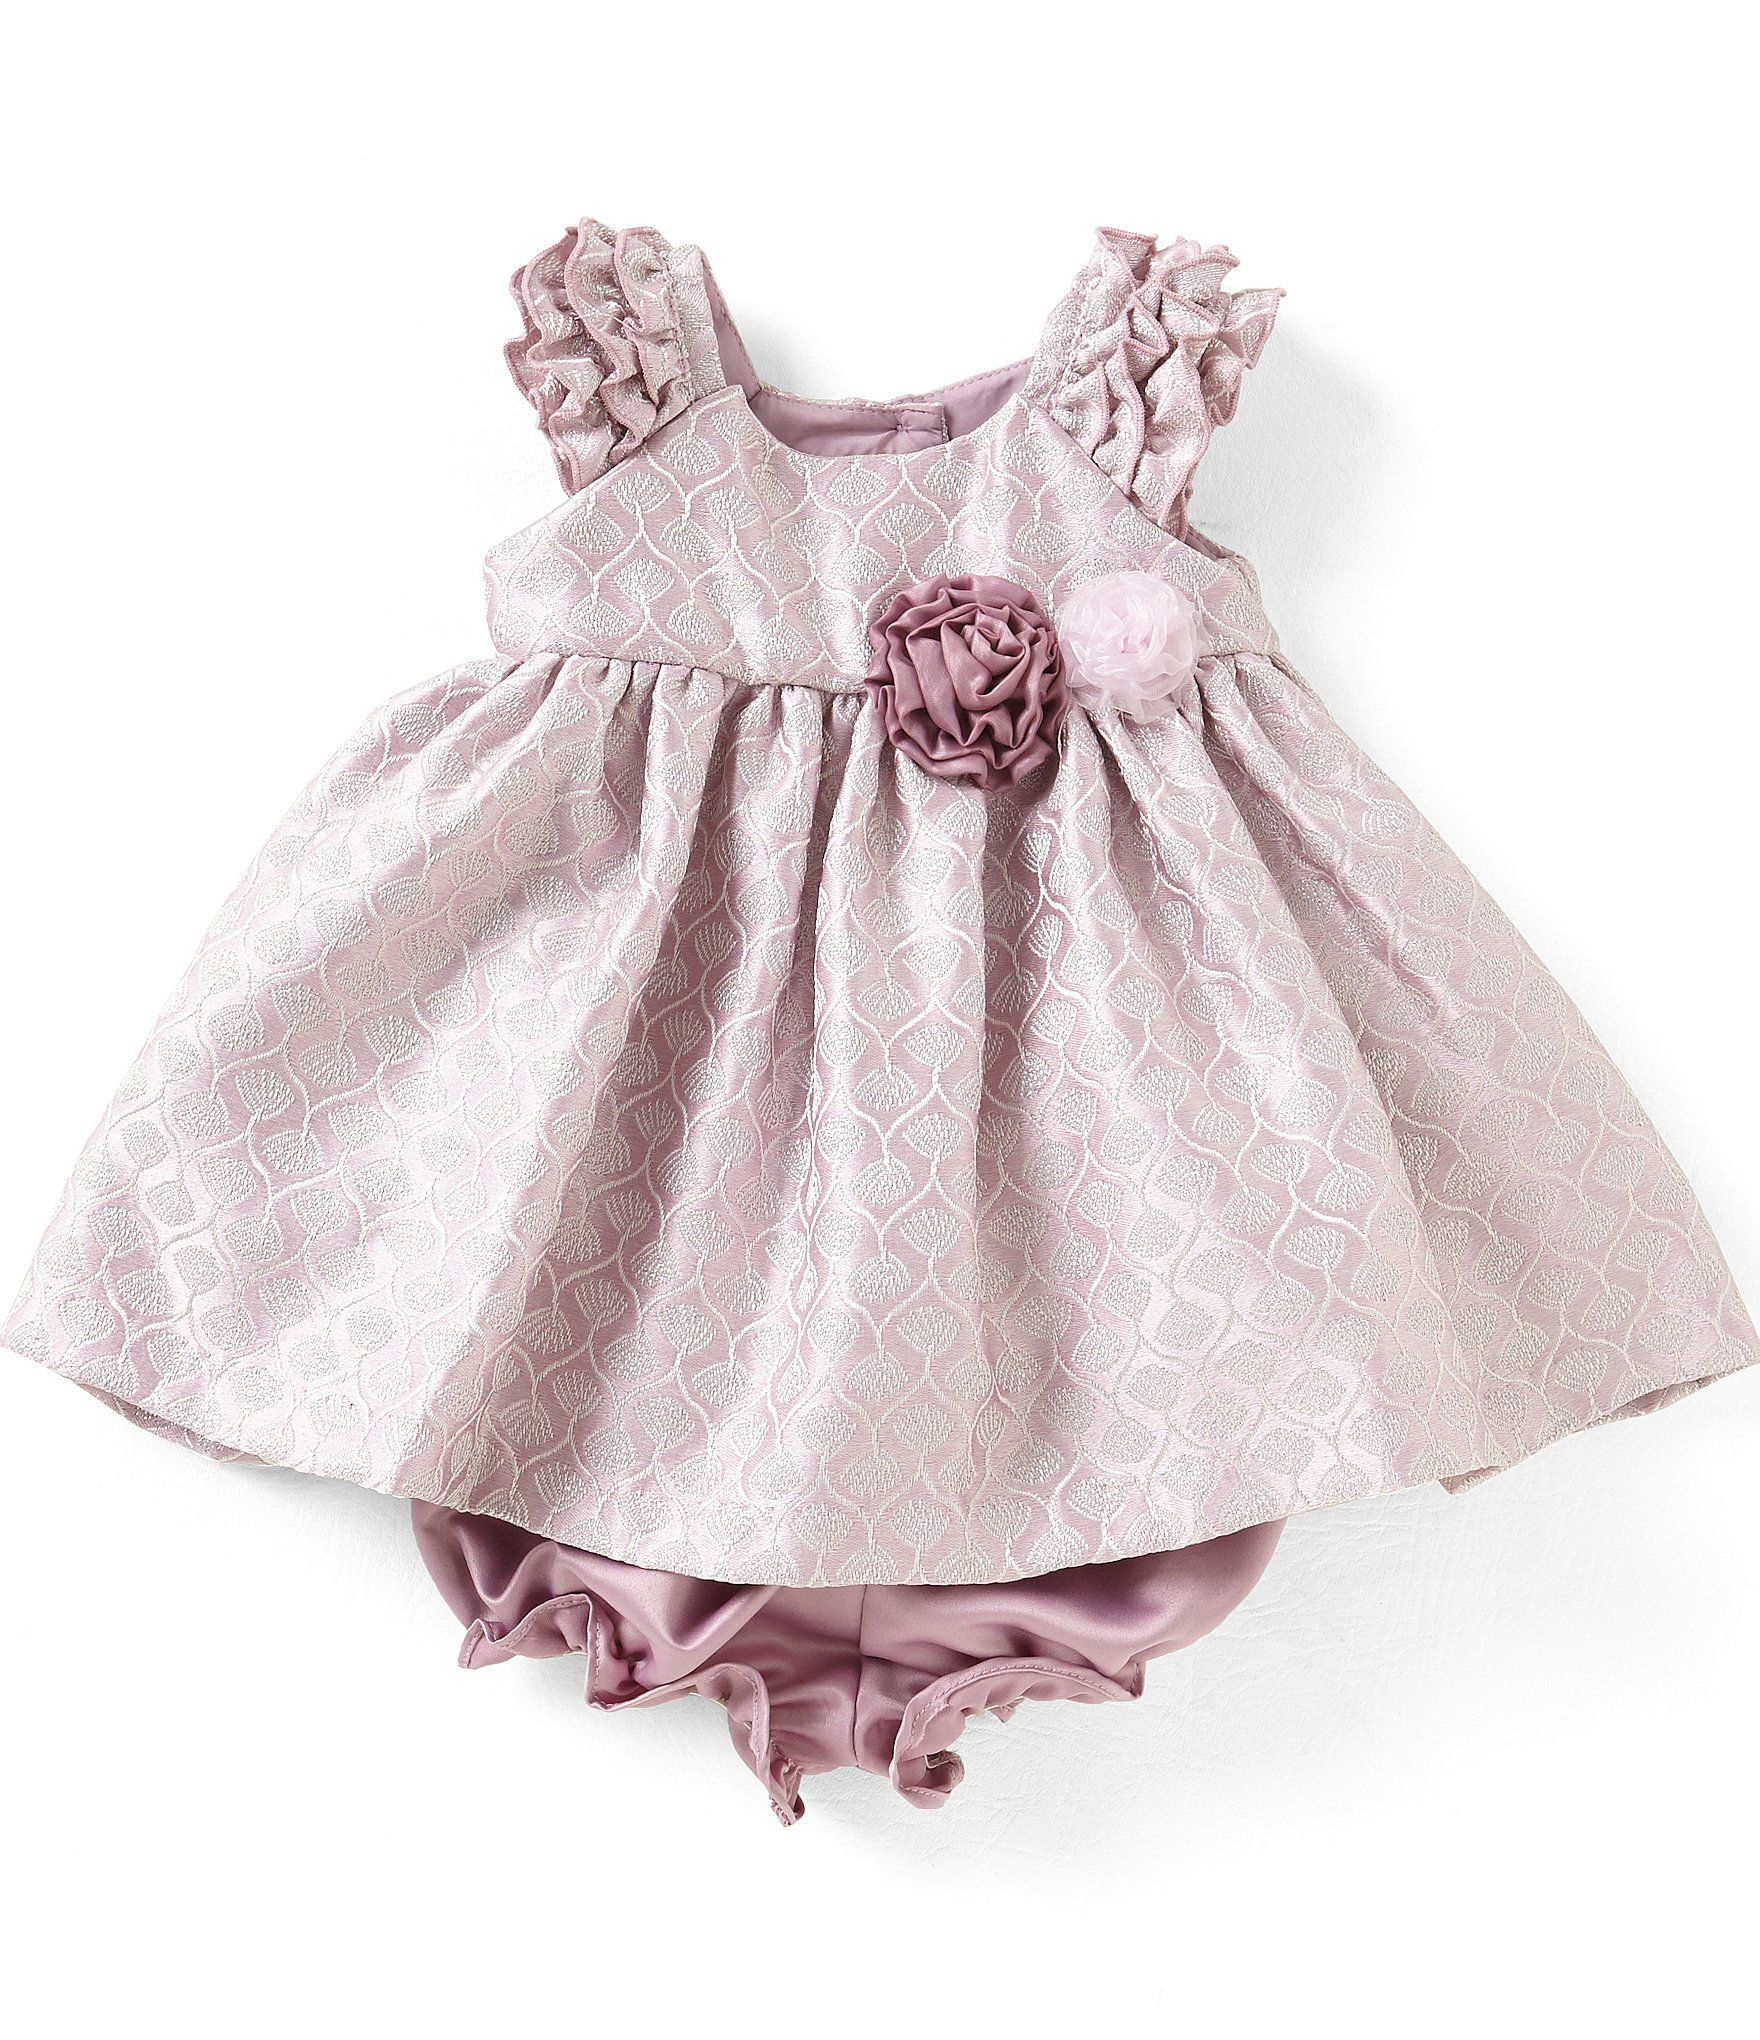 Laura Ashley London Baby Girls Newborn24 Months Brocade Patterned